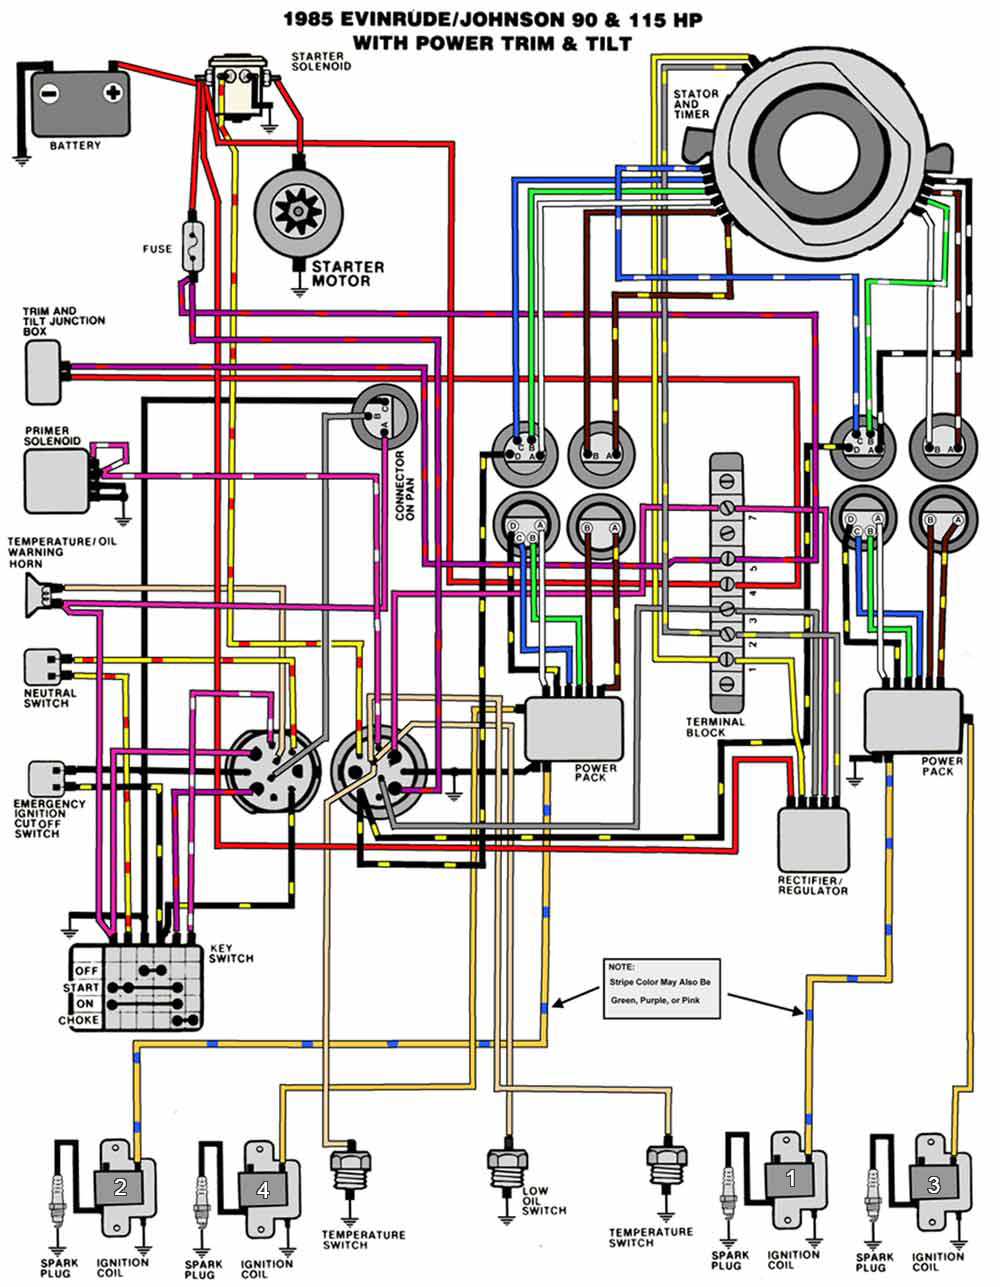 1985_90_115TnT evinrude vro wiring diagram evinrude wiring diagram outboards yamaha key switch wiring diagram at bayanpartner.co